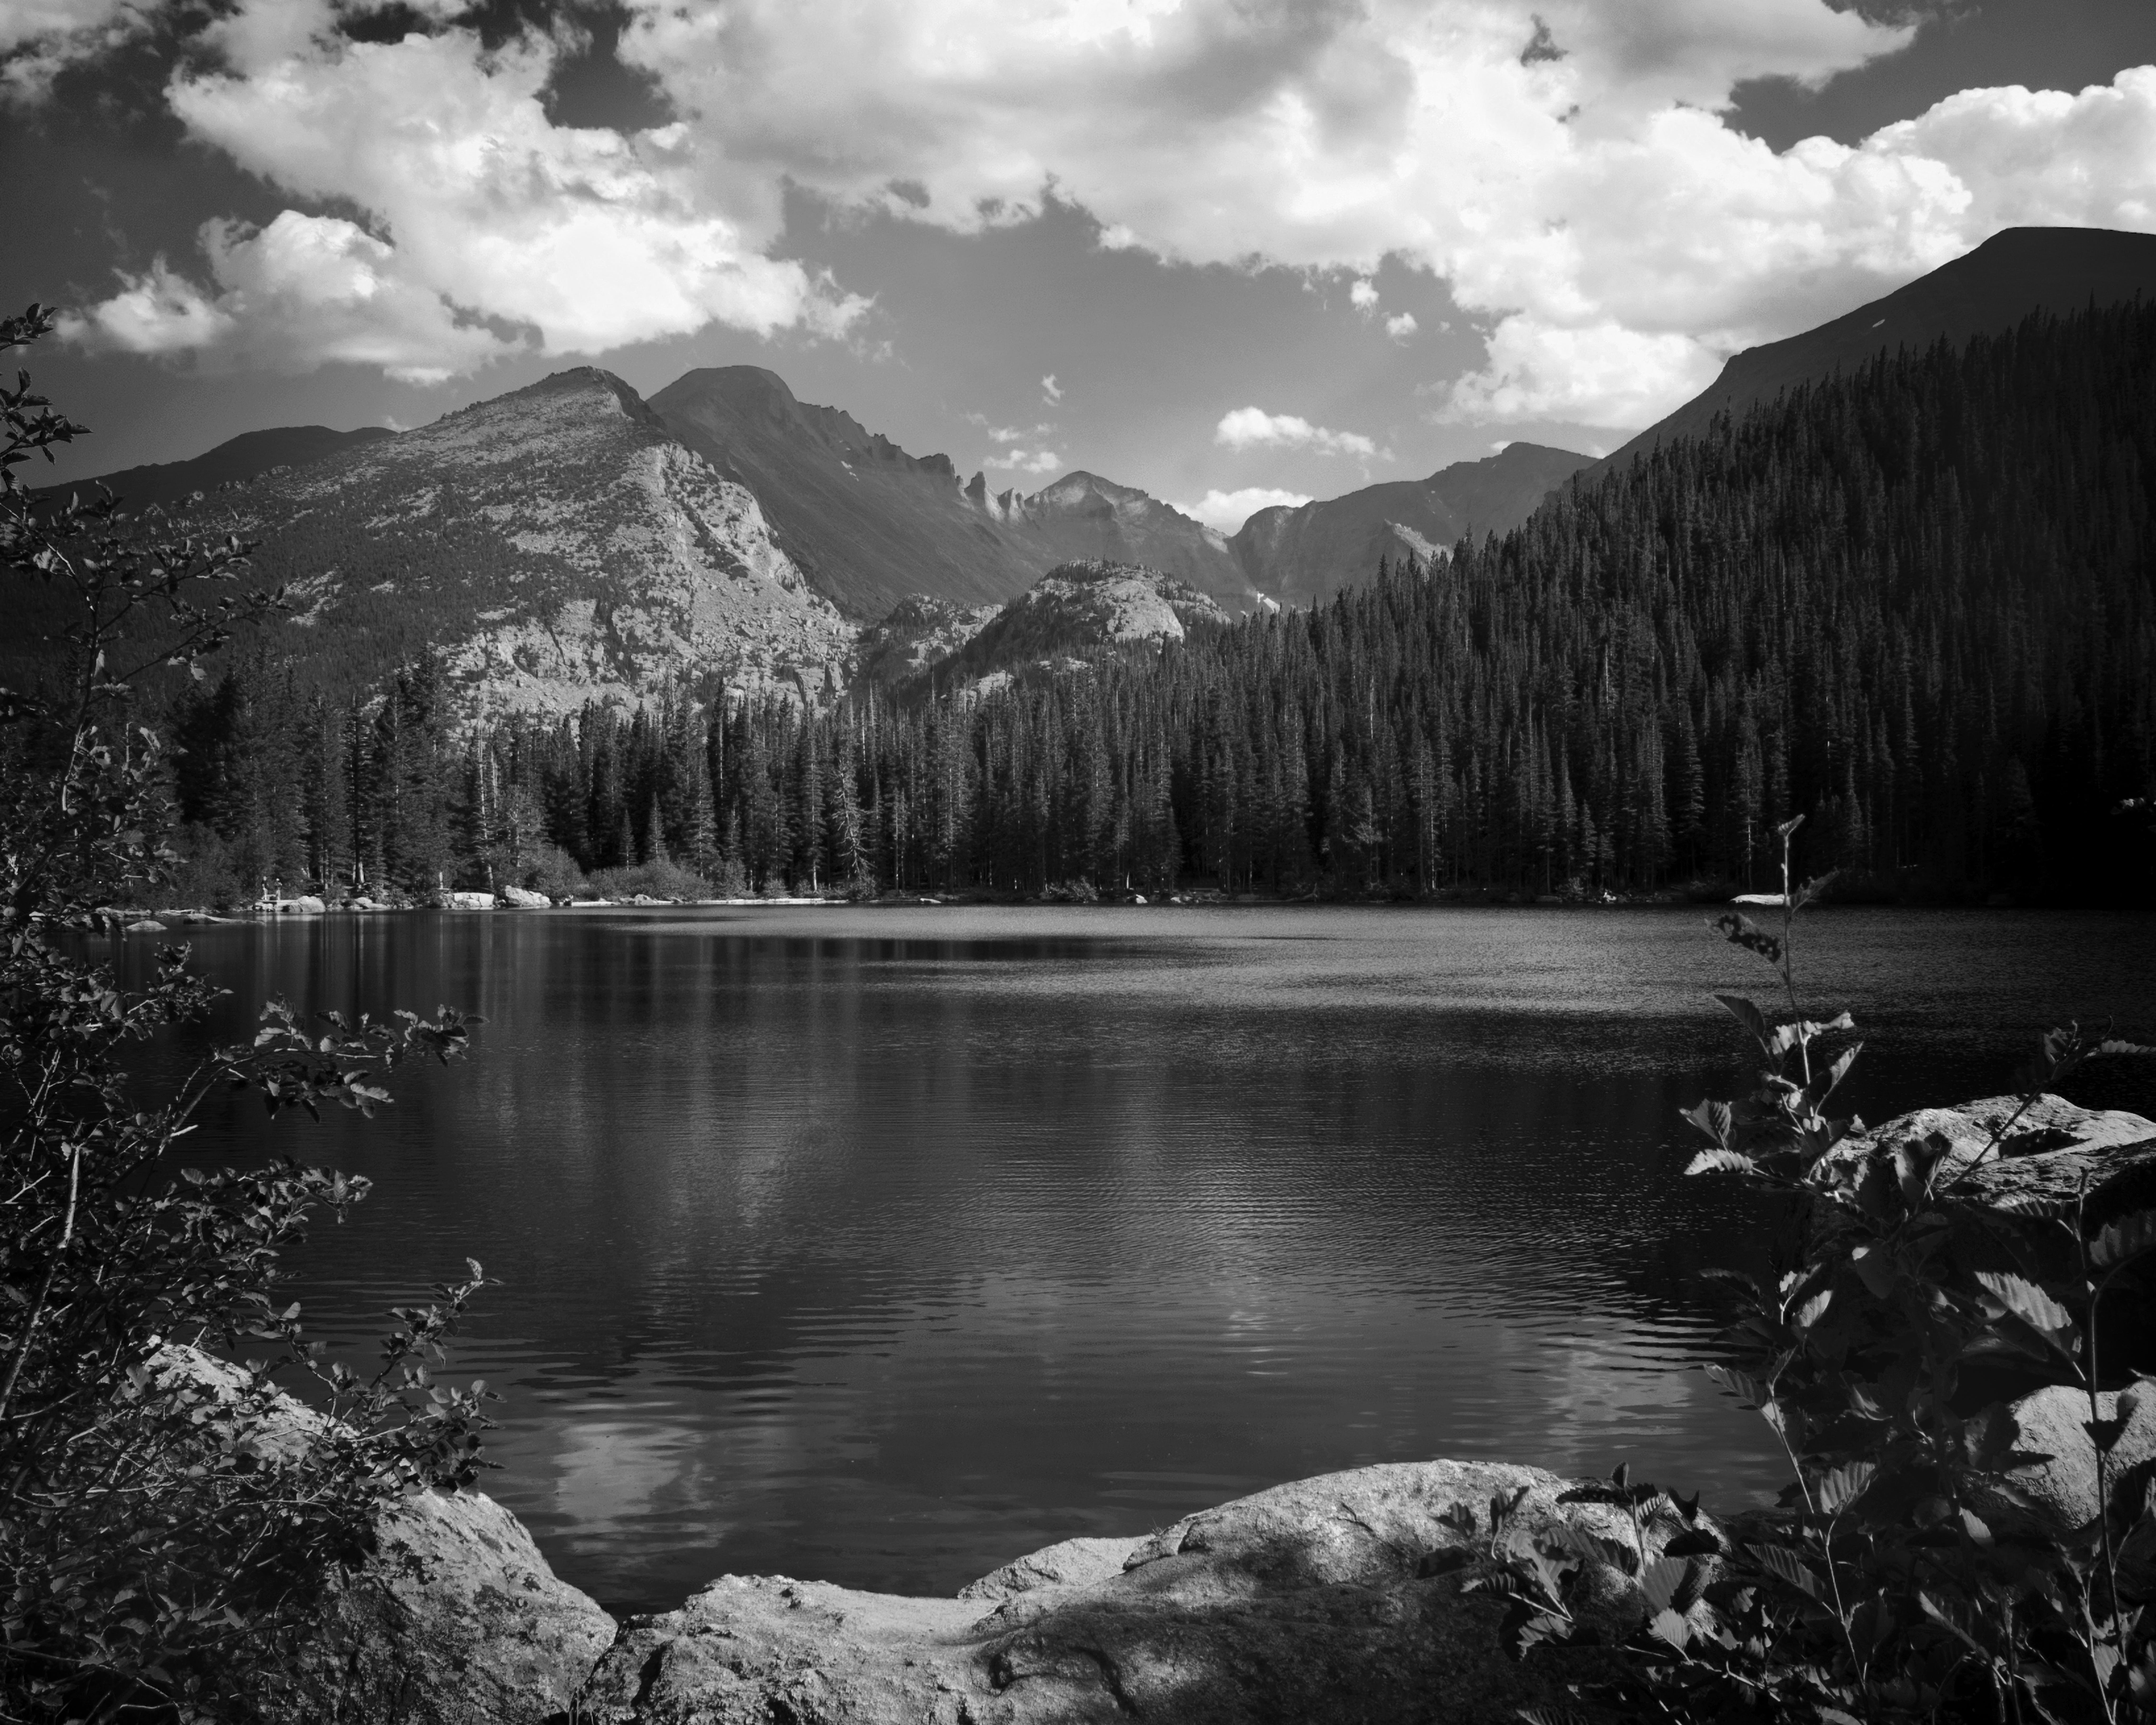 Grayscale Mountain Scenery